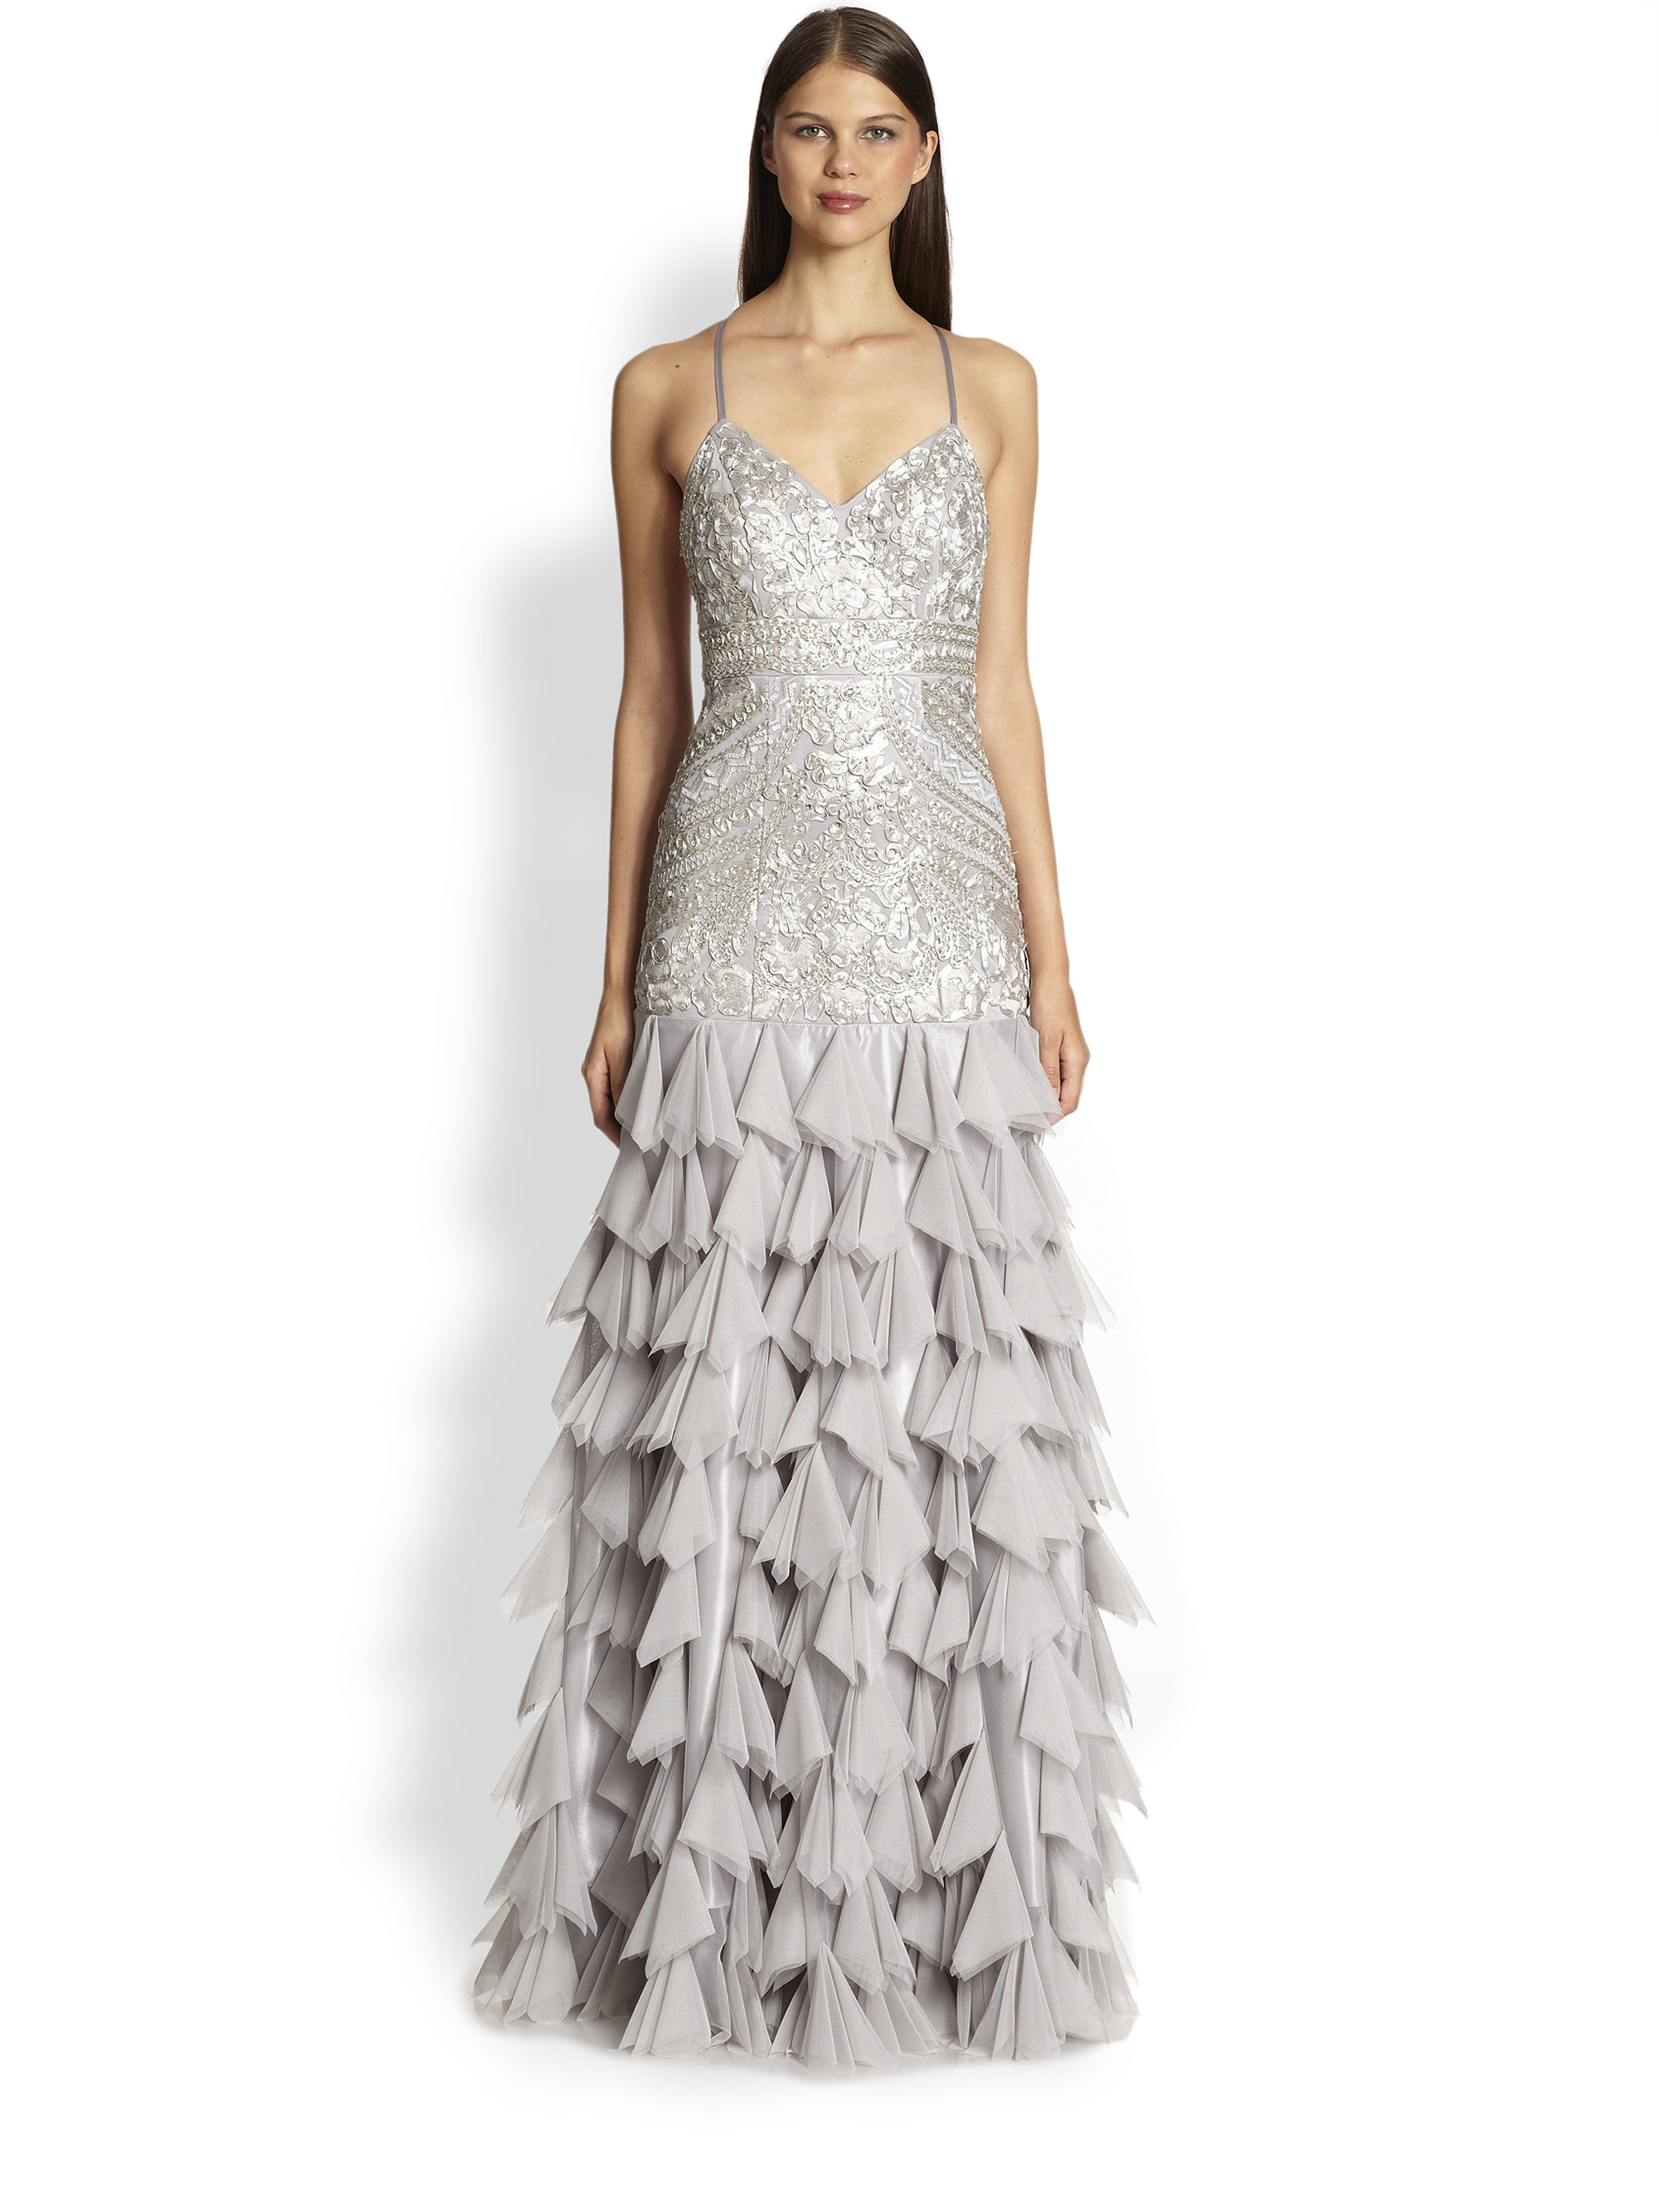 Nice Sue Wong Gown Chiffon Skirt Vignette - Images for wedding gown ...